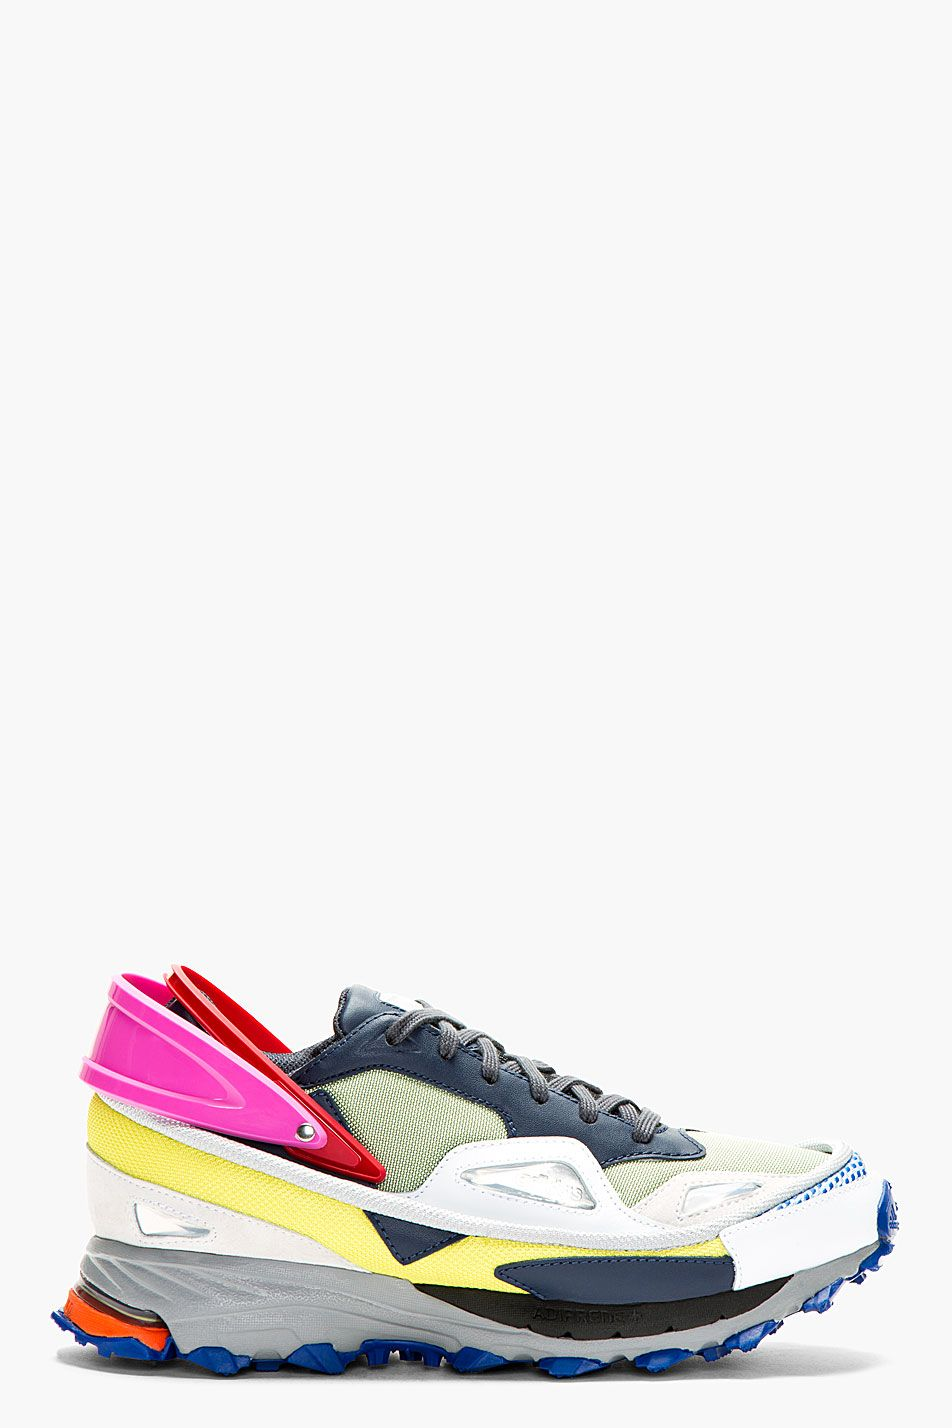 RAF SIMONS GREY & PINK RUBBER TRIMMED ADIDAS EDITION